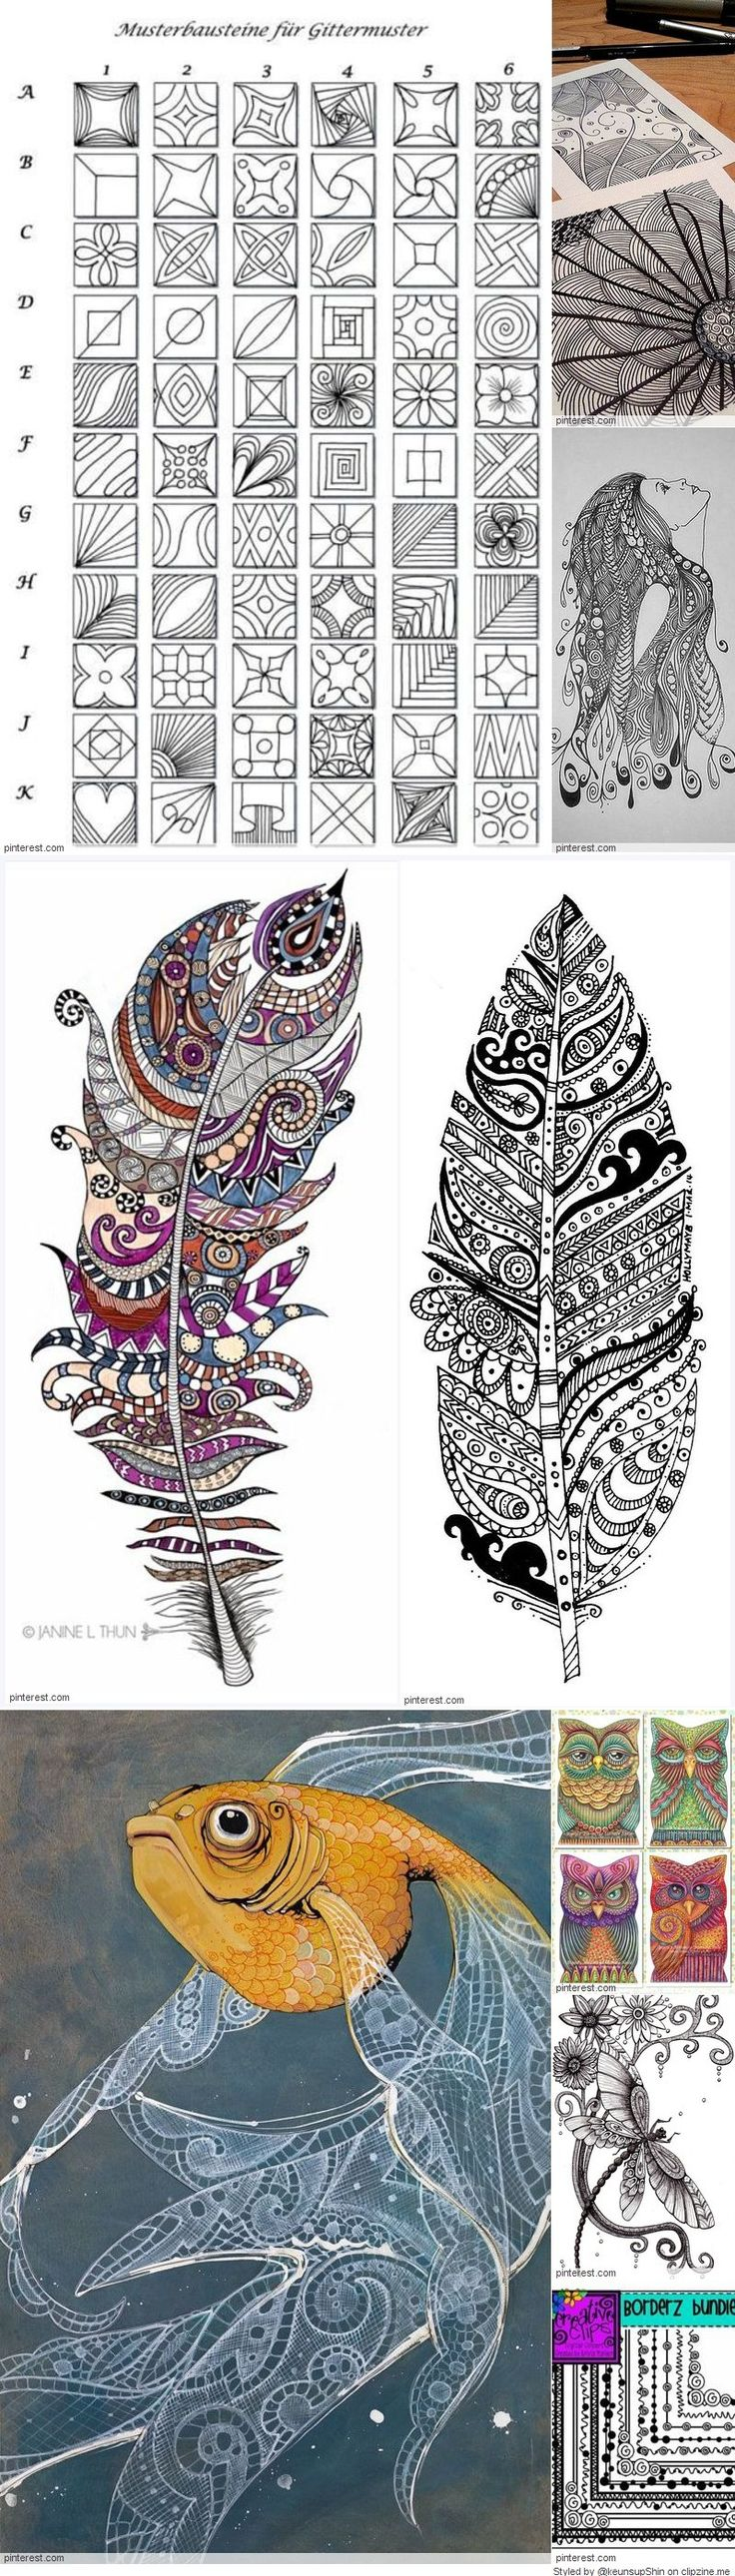 Zentangle Patterns                                                                                                                                                                                 More